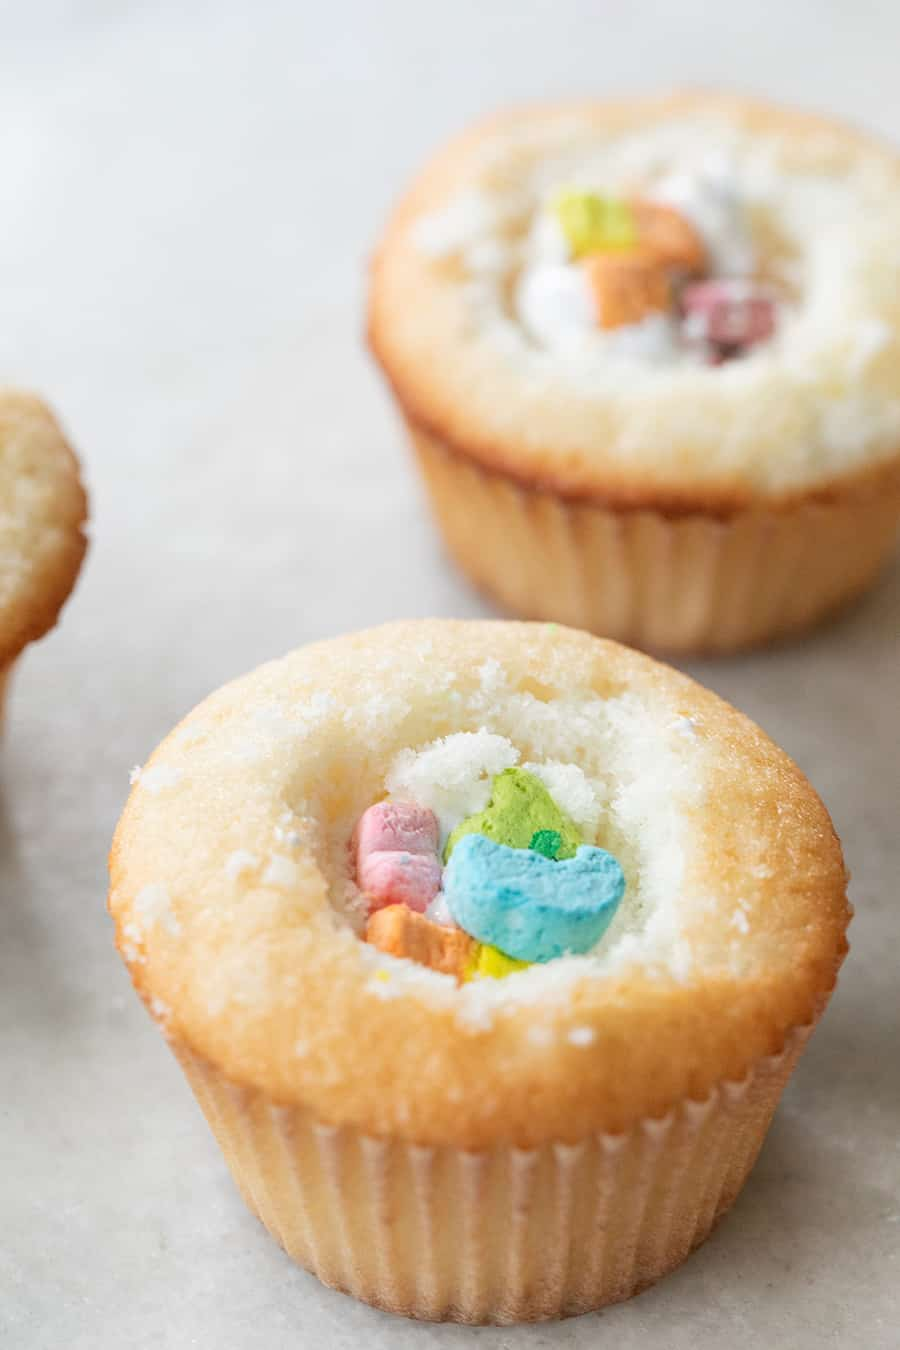 Lucky Charms Cupcakes filled with marshmallow fluff.